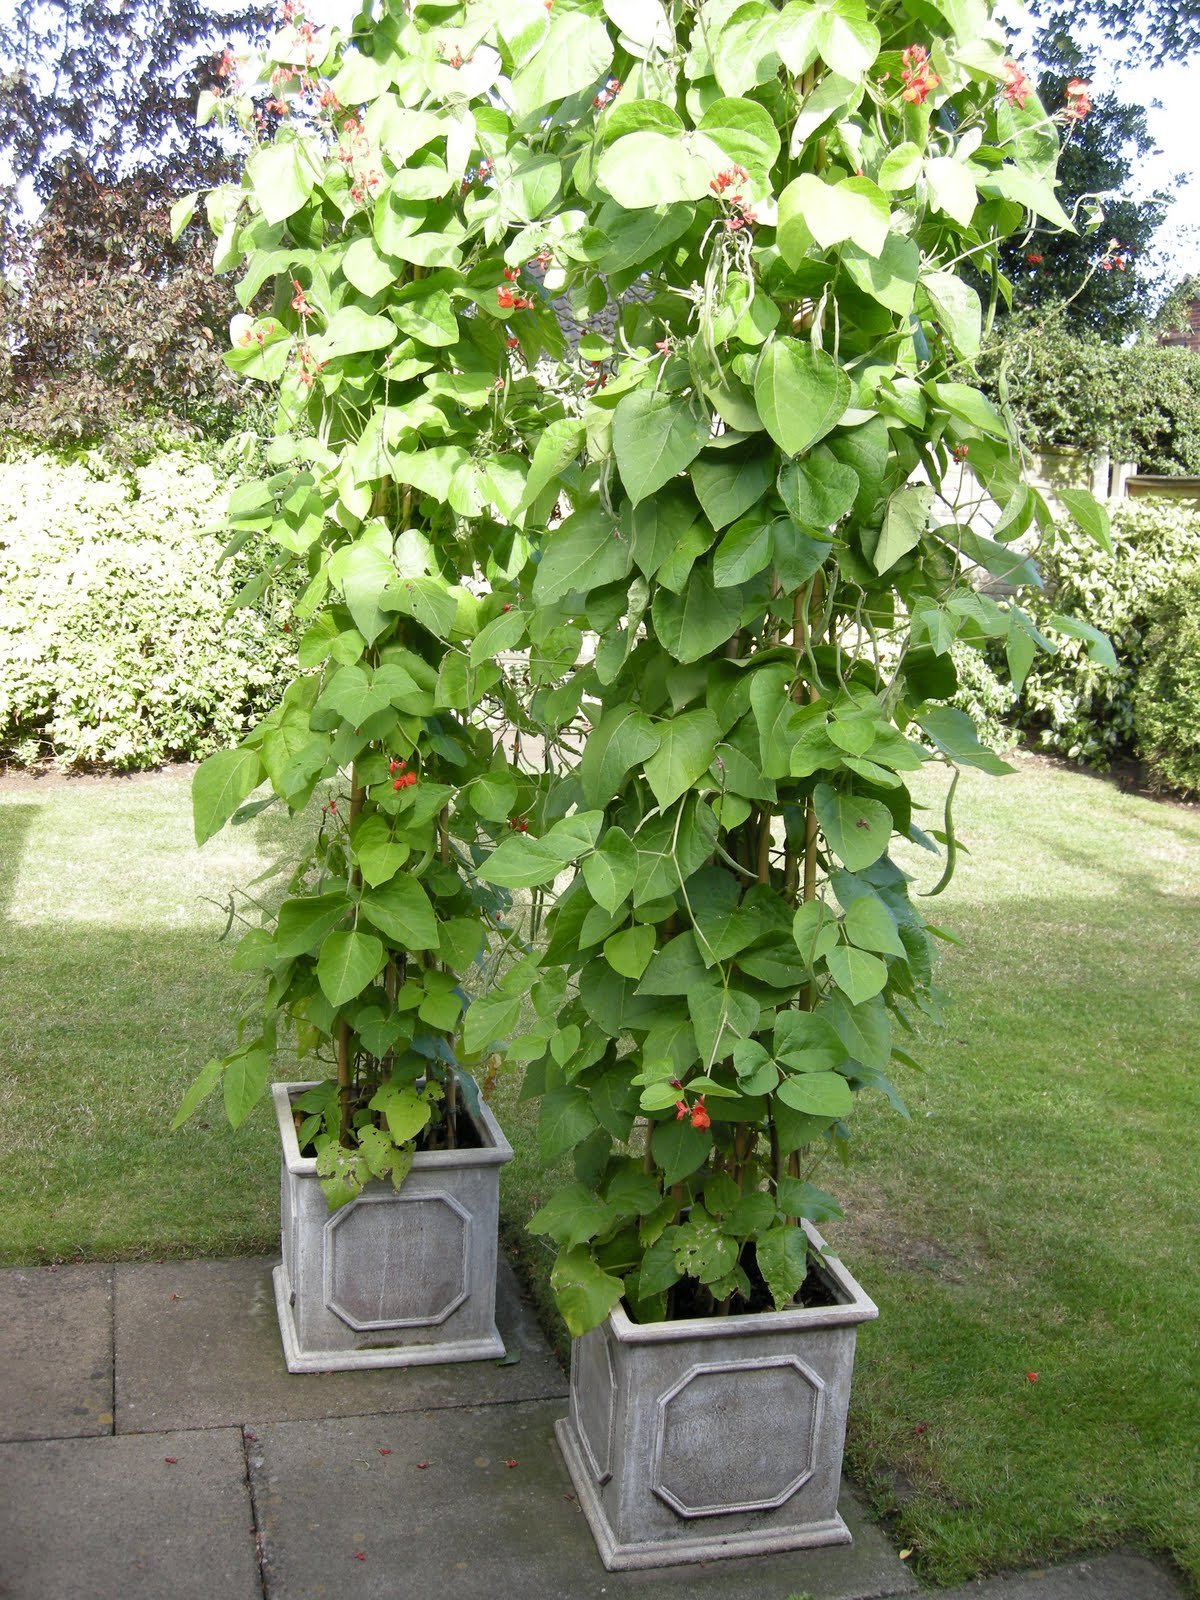 Growing bush beans in containers - Green Bean Plant In A Pot The Plants In The Beige Pots